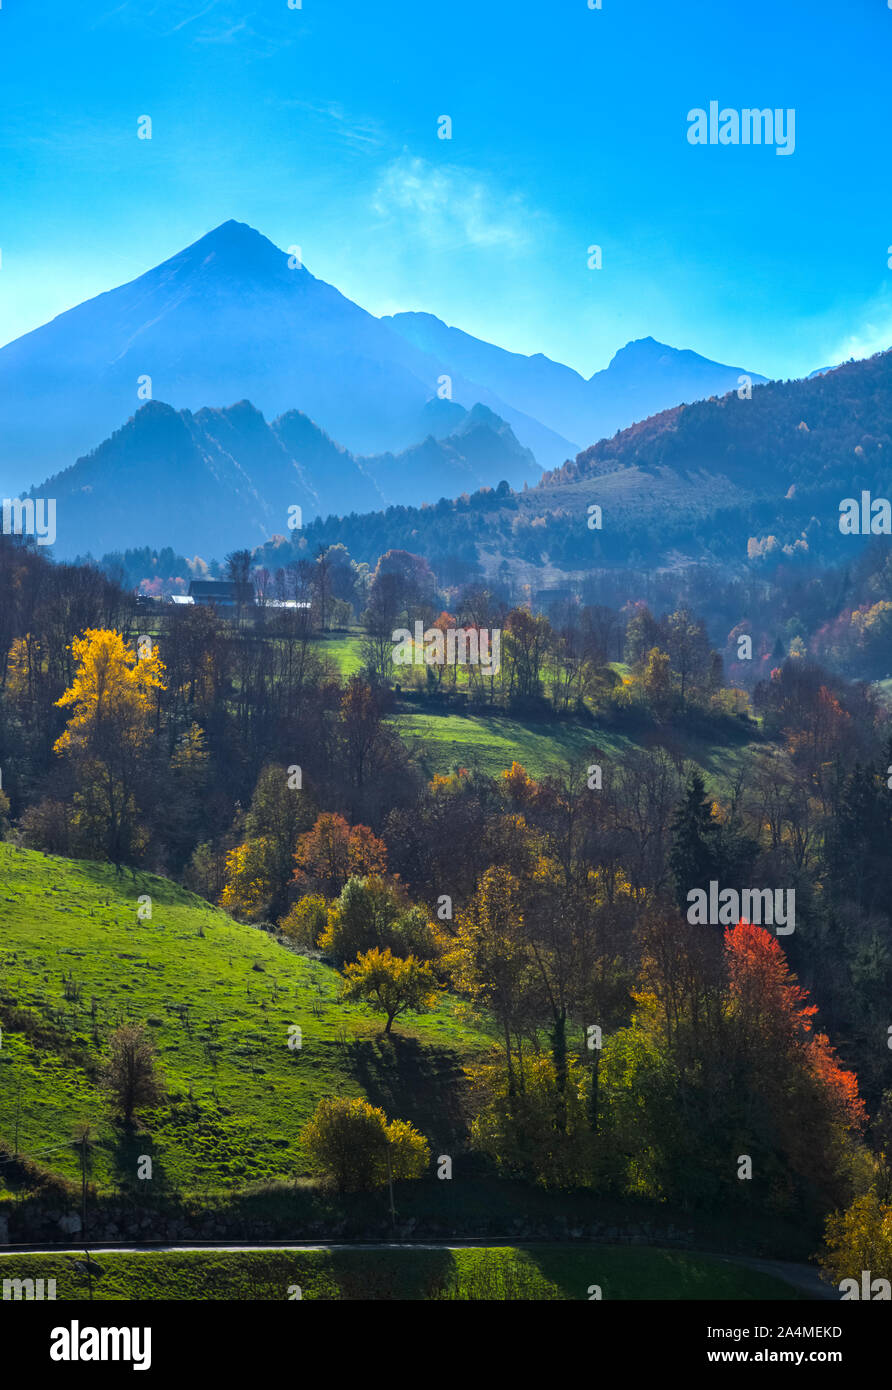 Early autumn landscape located in the French Pyrenees Mountains. Stock Photo